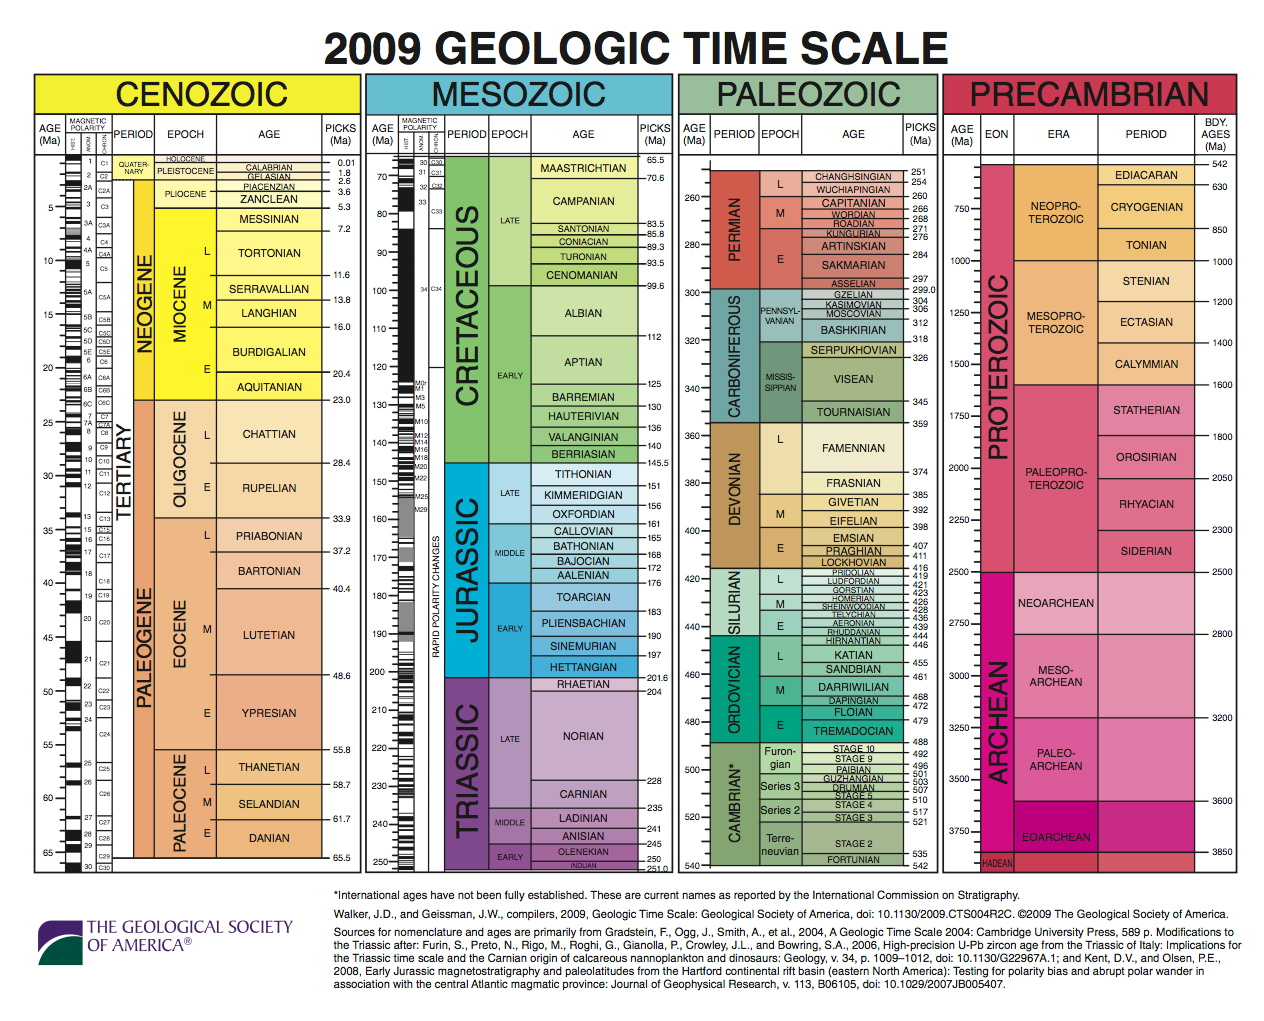 Geologic time scale wikipedia the free encyclopedia places to geologic time scale wikipedia the free encyclopedia places to visit pinterest ccuart Image collections